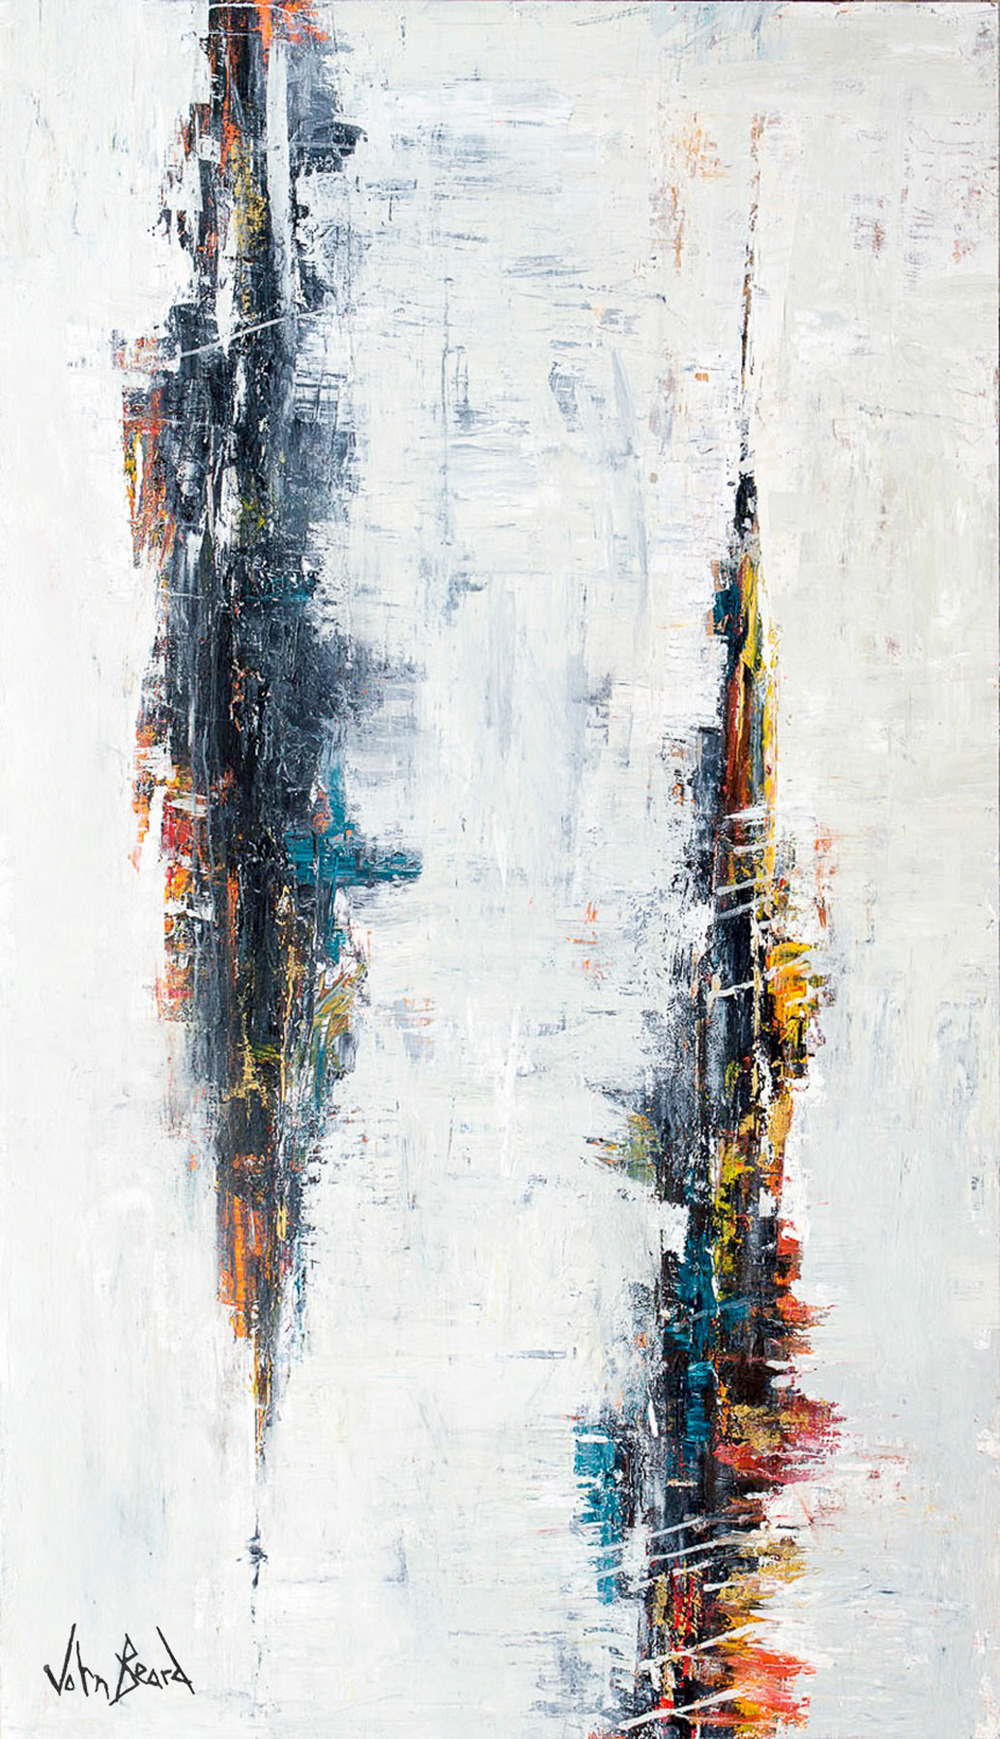 Distortion by John Beard, 48x90